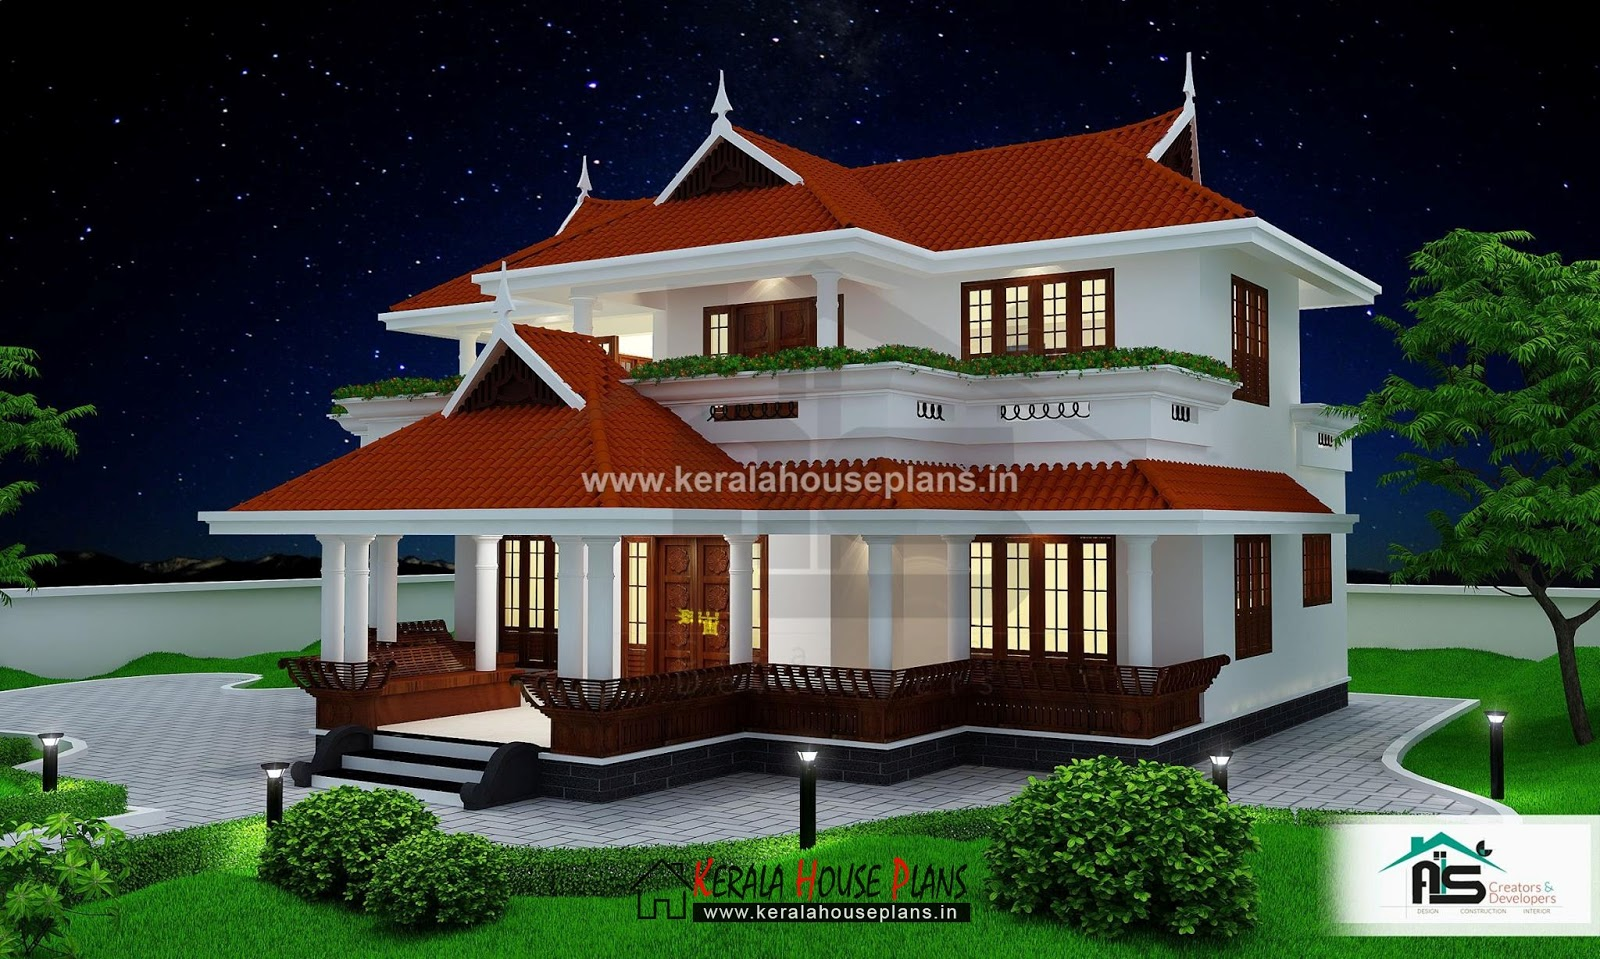 Veedu plan kerala traditional style home kerala house for Traditional home designs